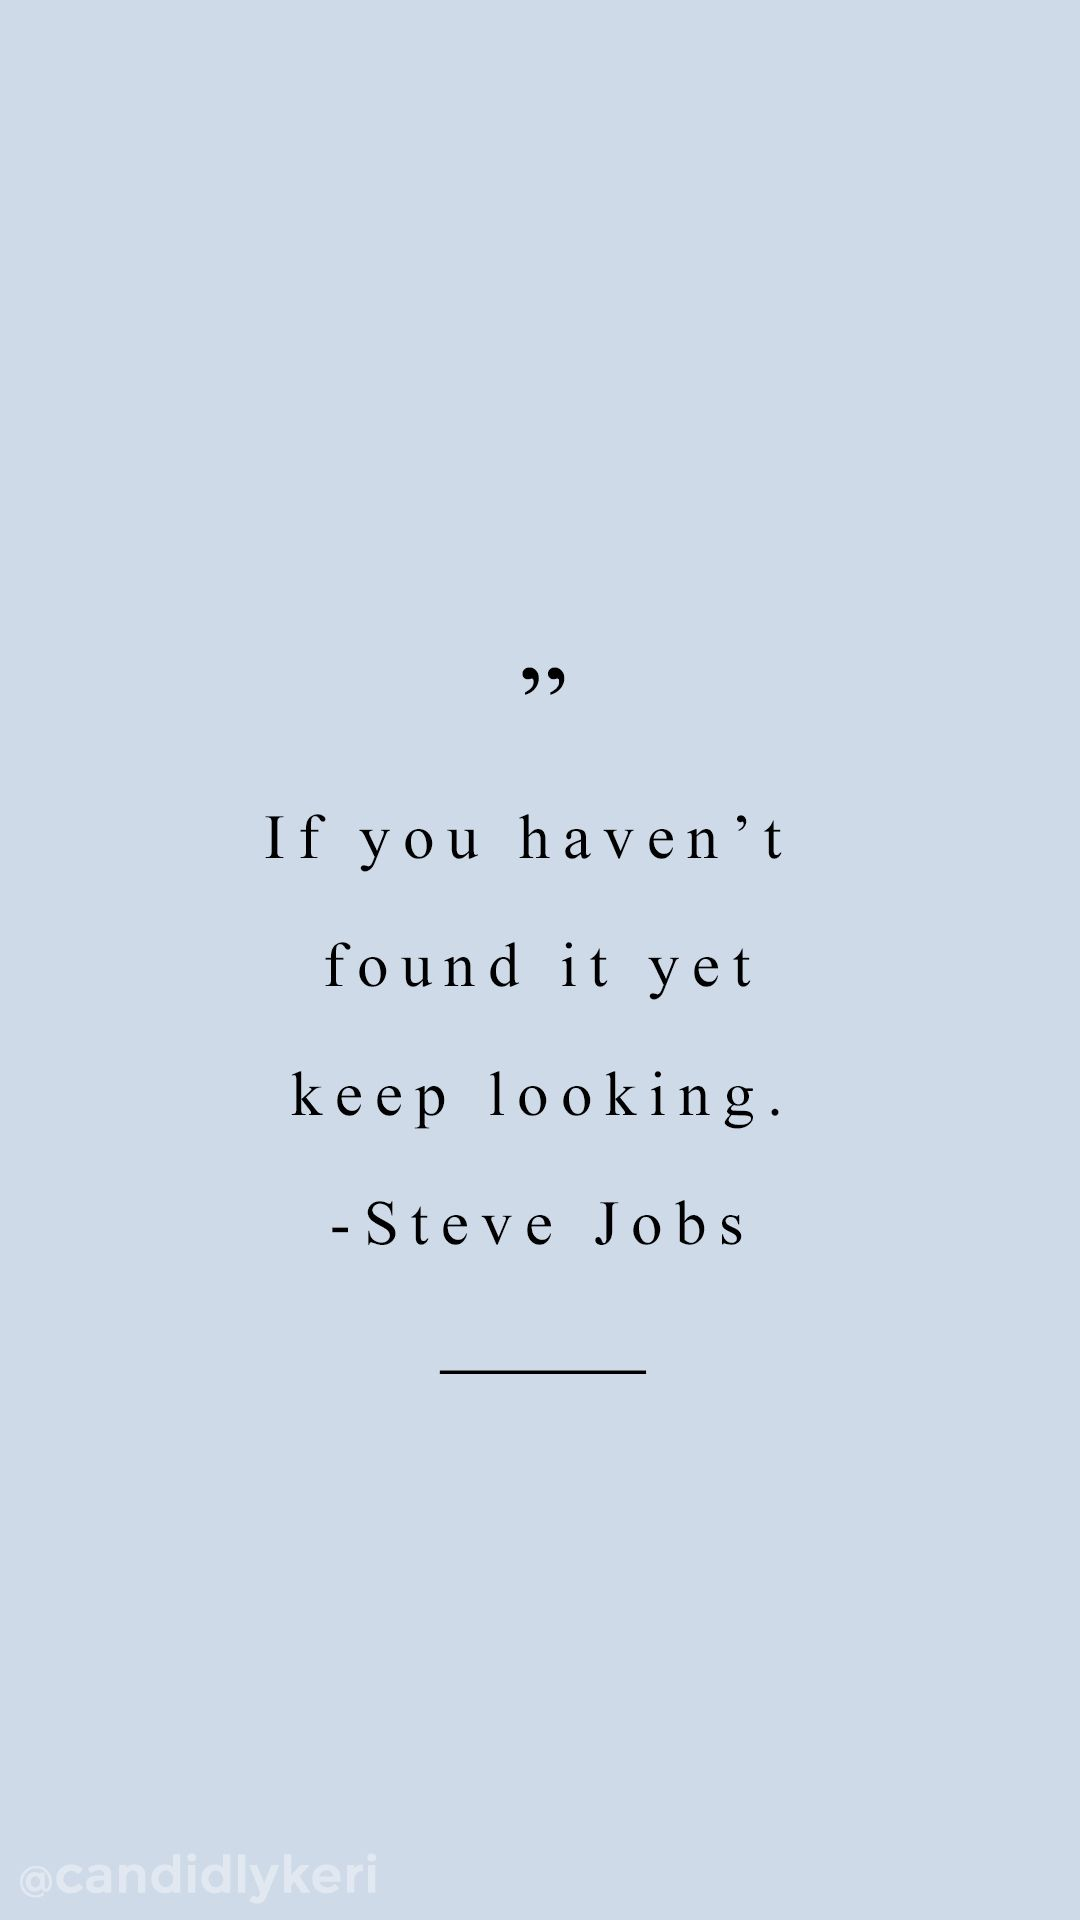 Steve Jobs Motivational Quotes Tumblr thumbnail